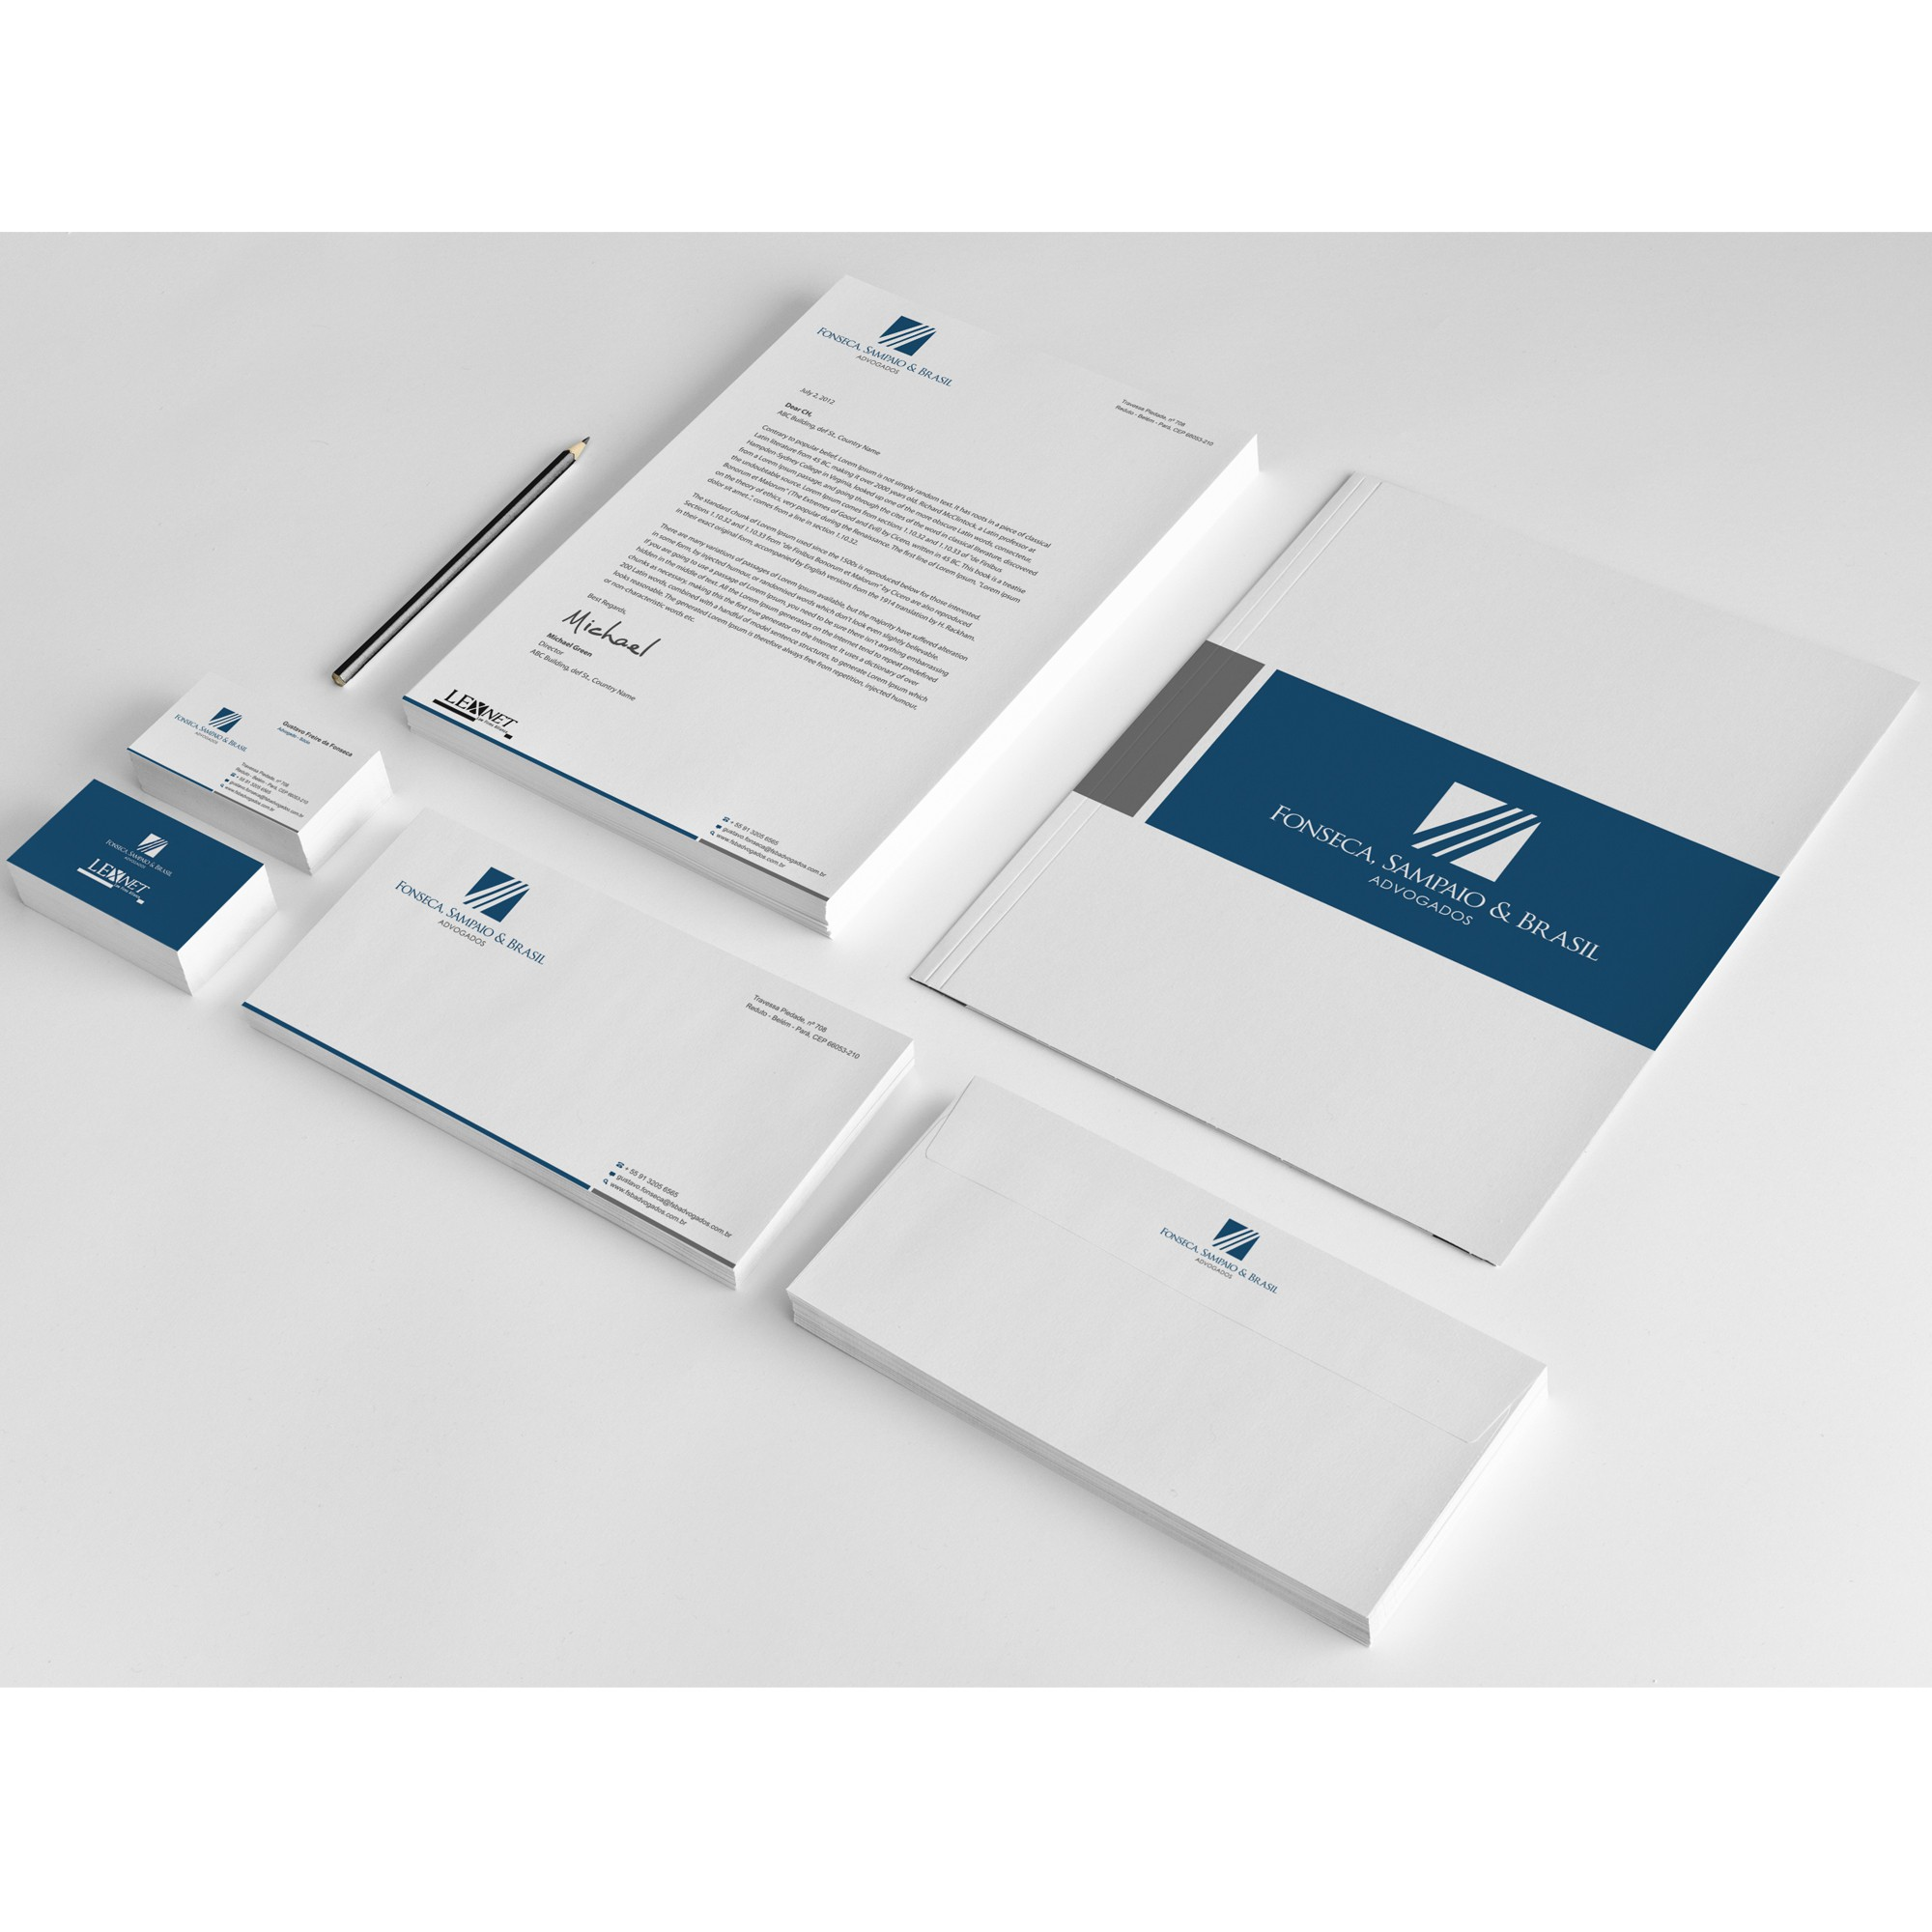 New stationery wanted for Fonseca, Sampaio & Brasil Advogados